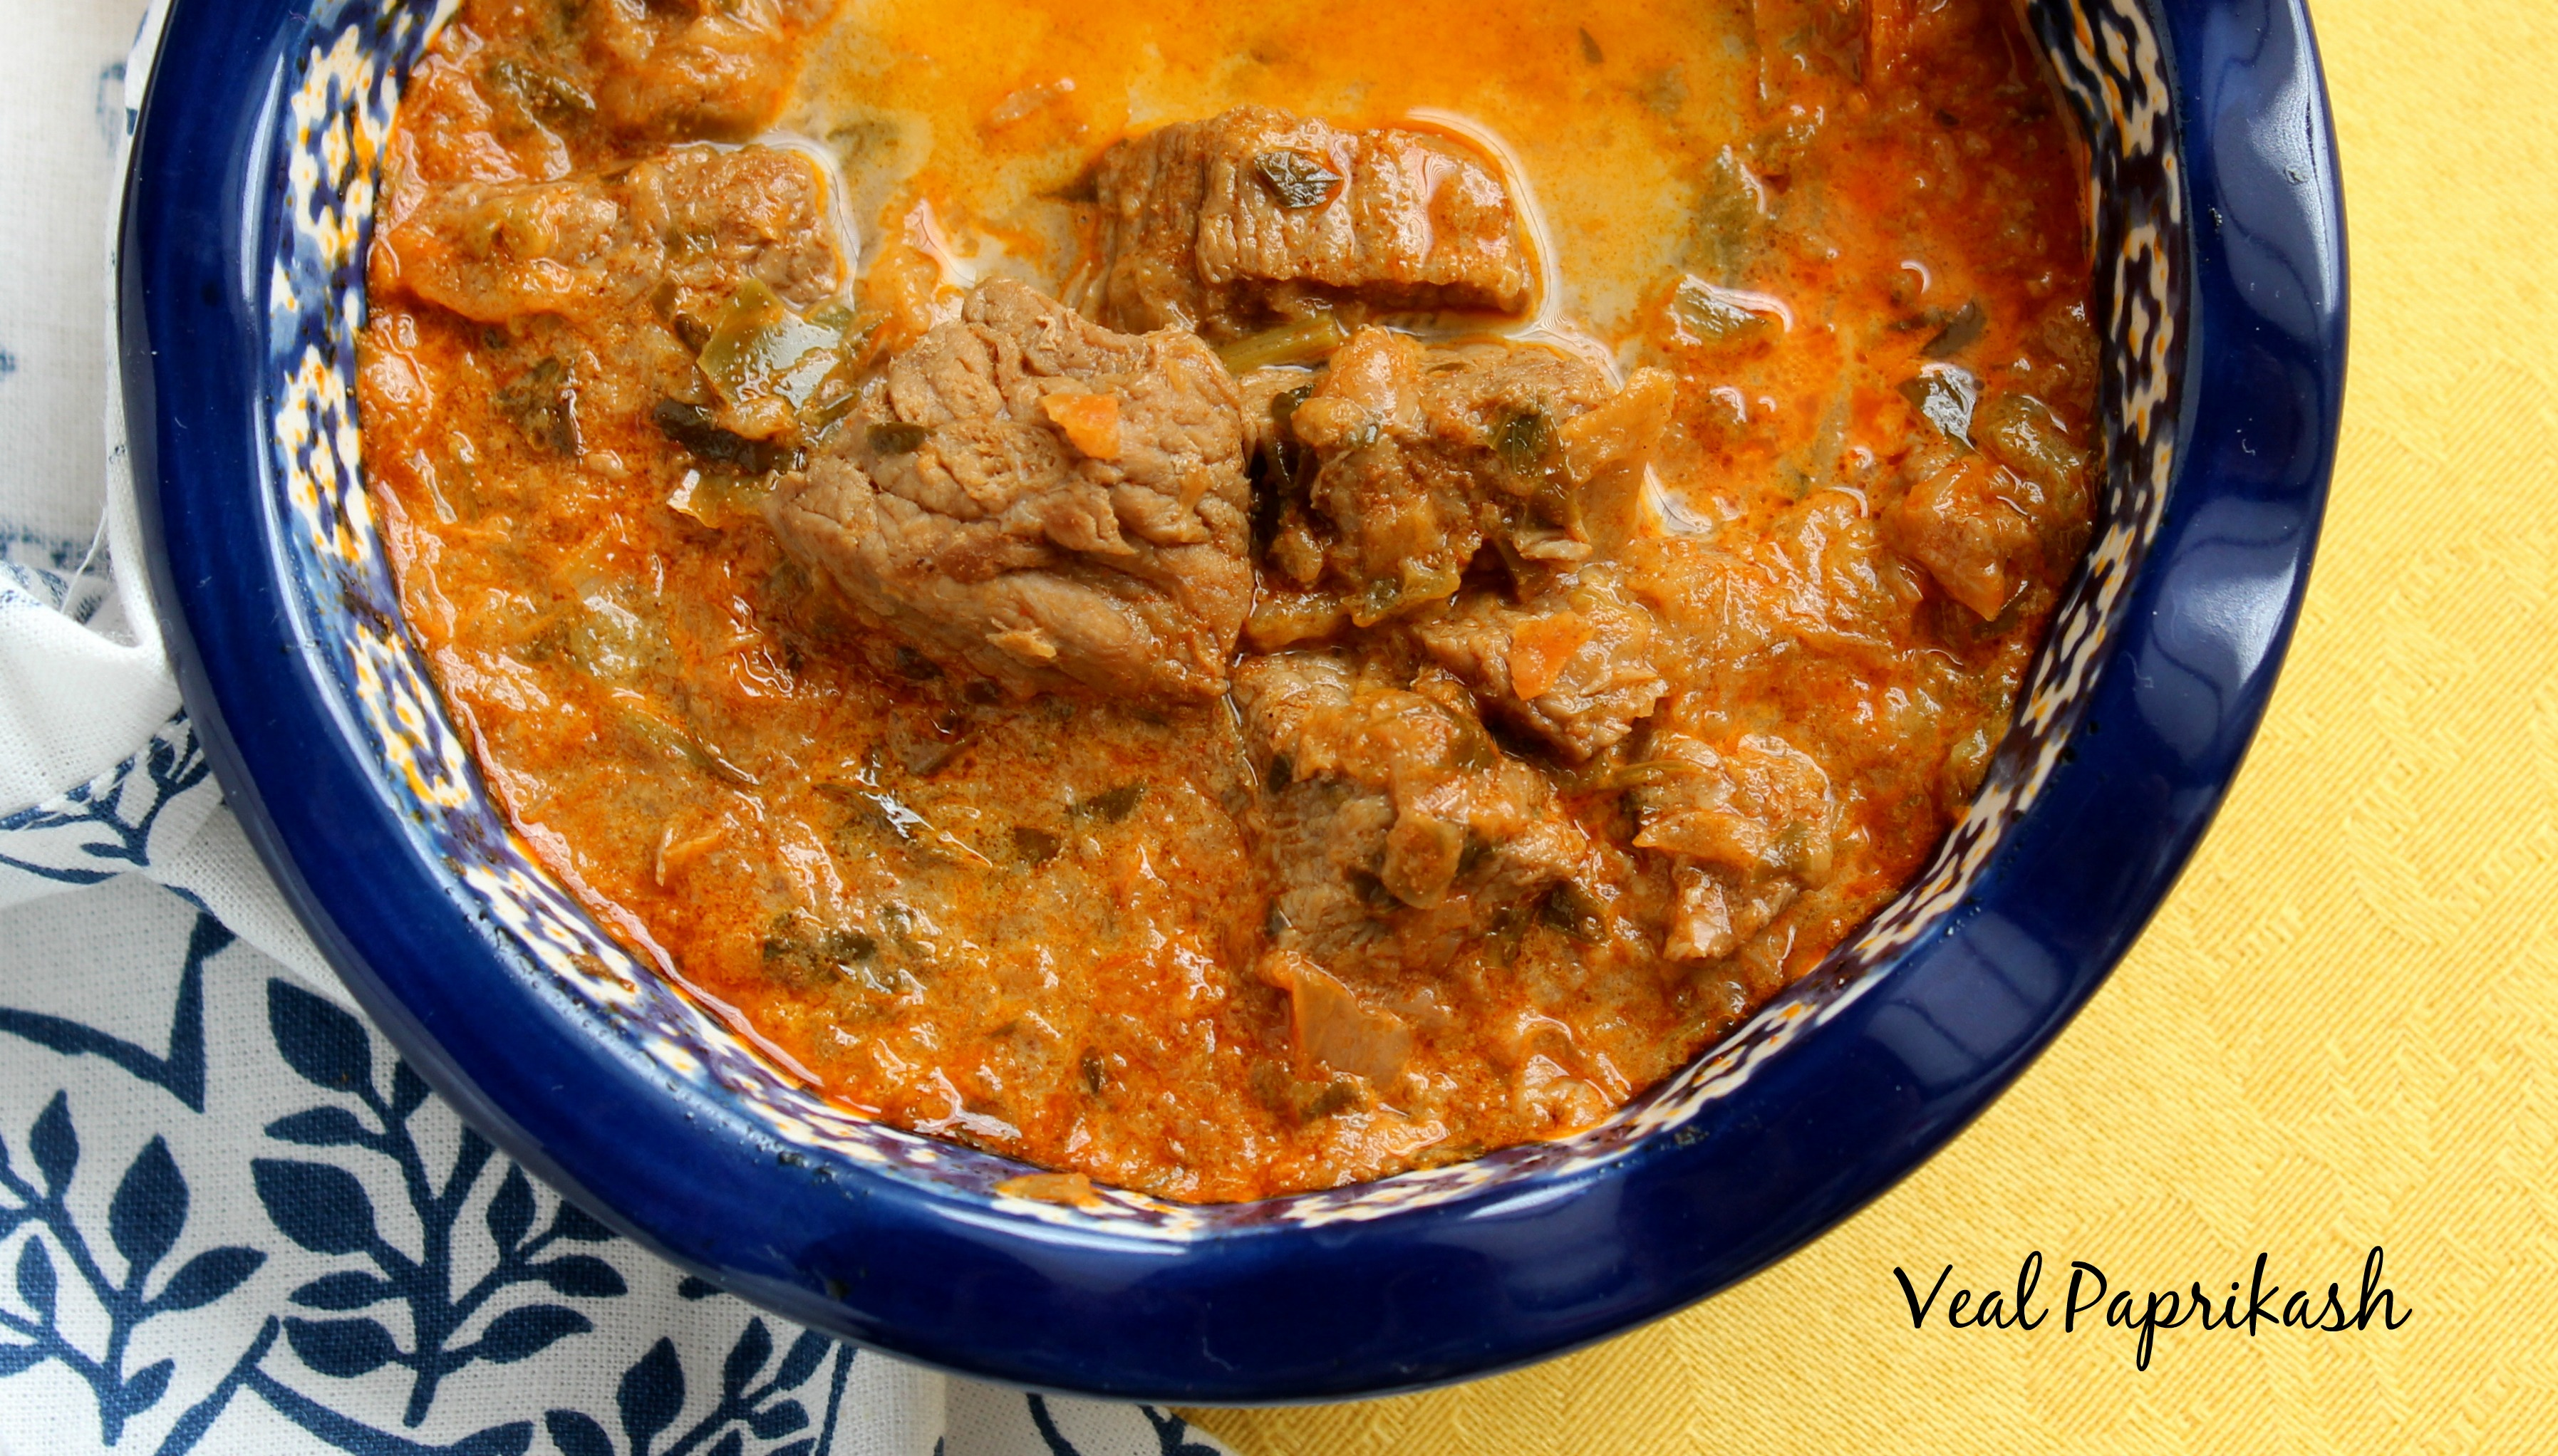 Too Much Pepper in THIS Paprikash!: Mama Buddha's Veal Paprikash